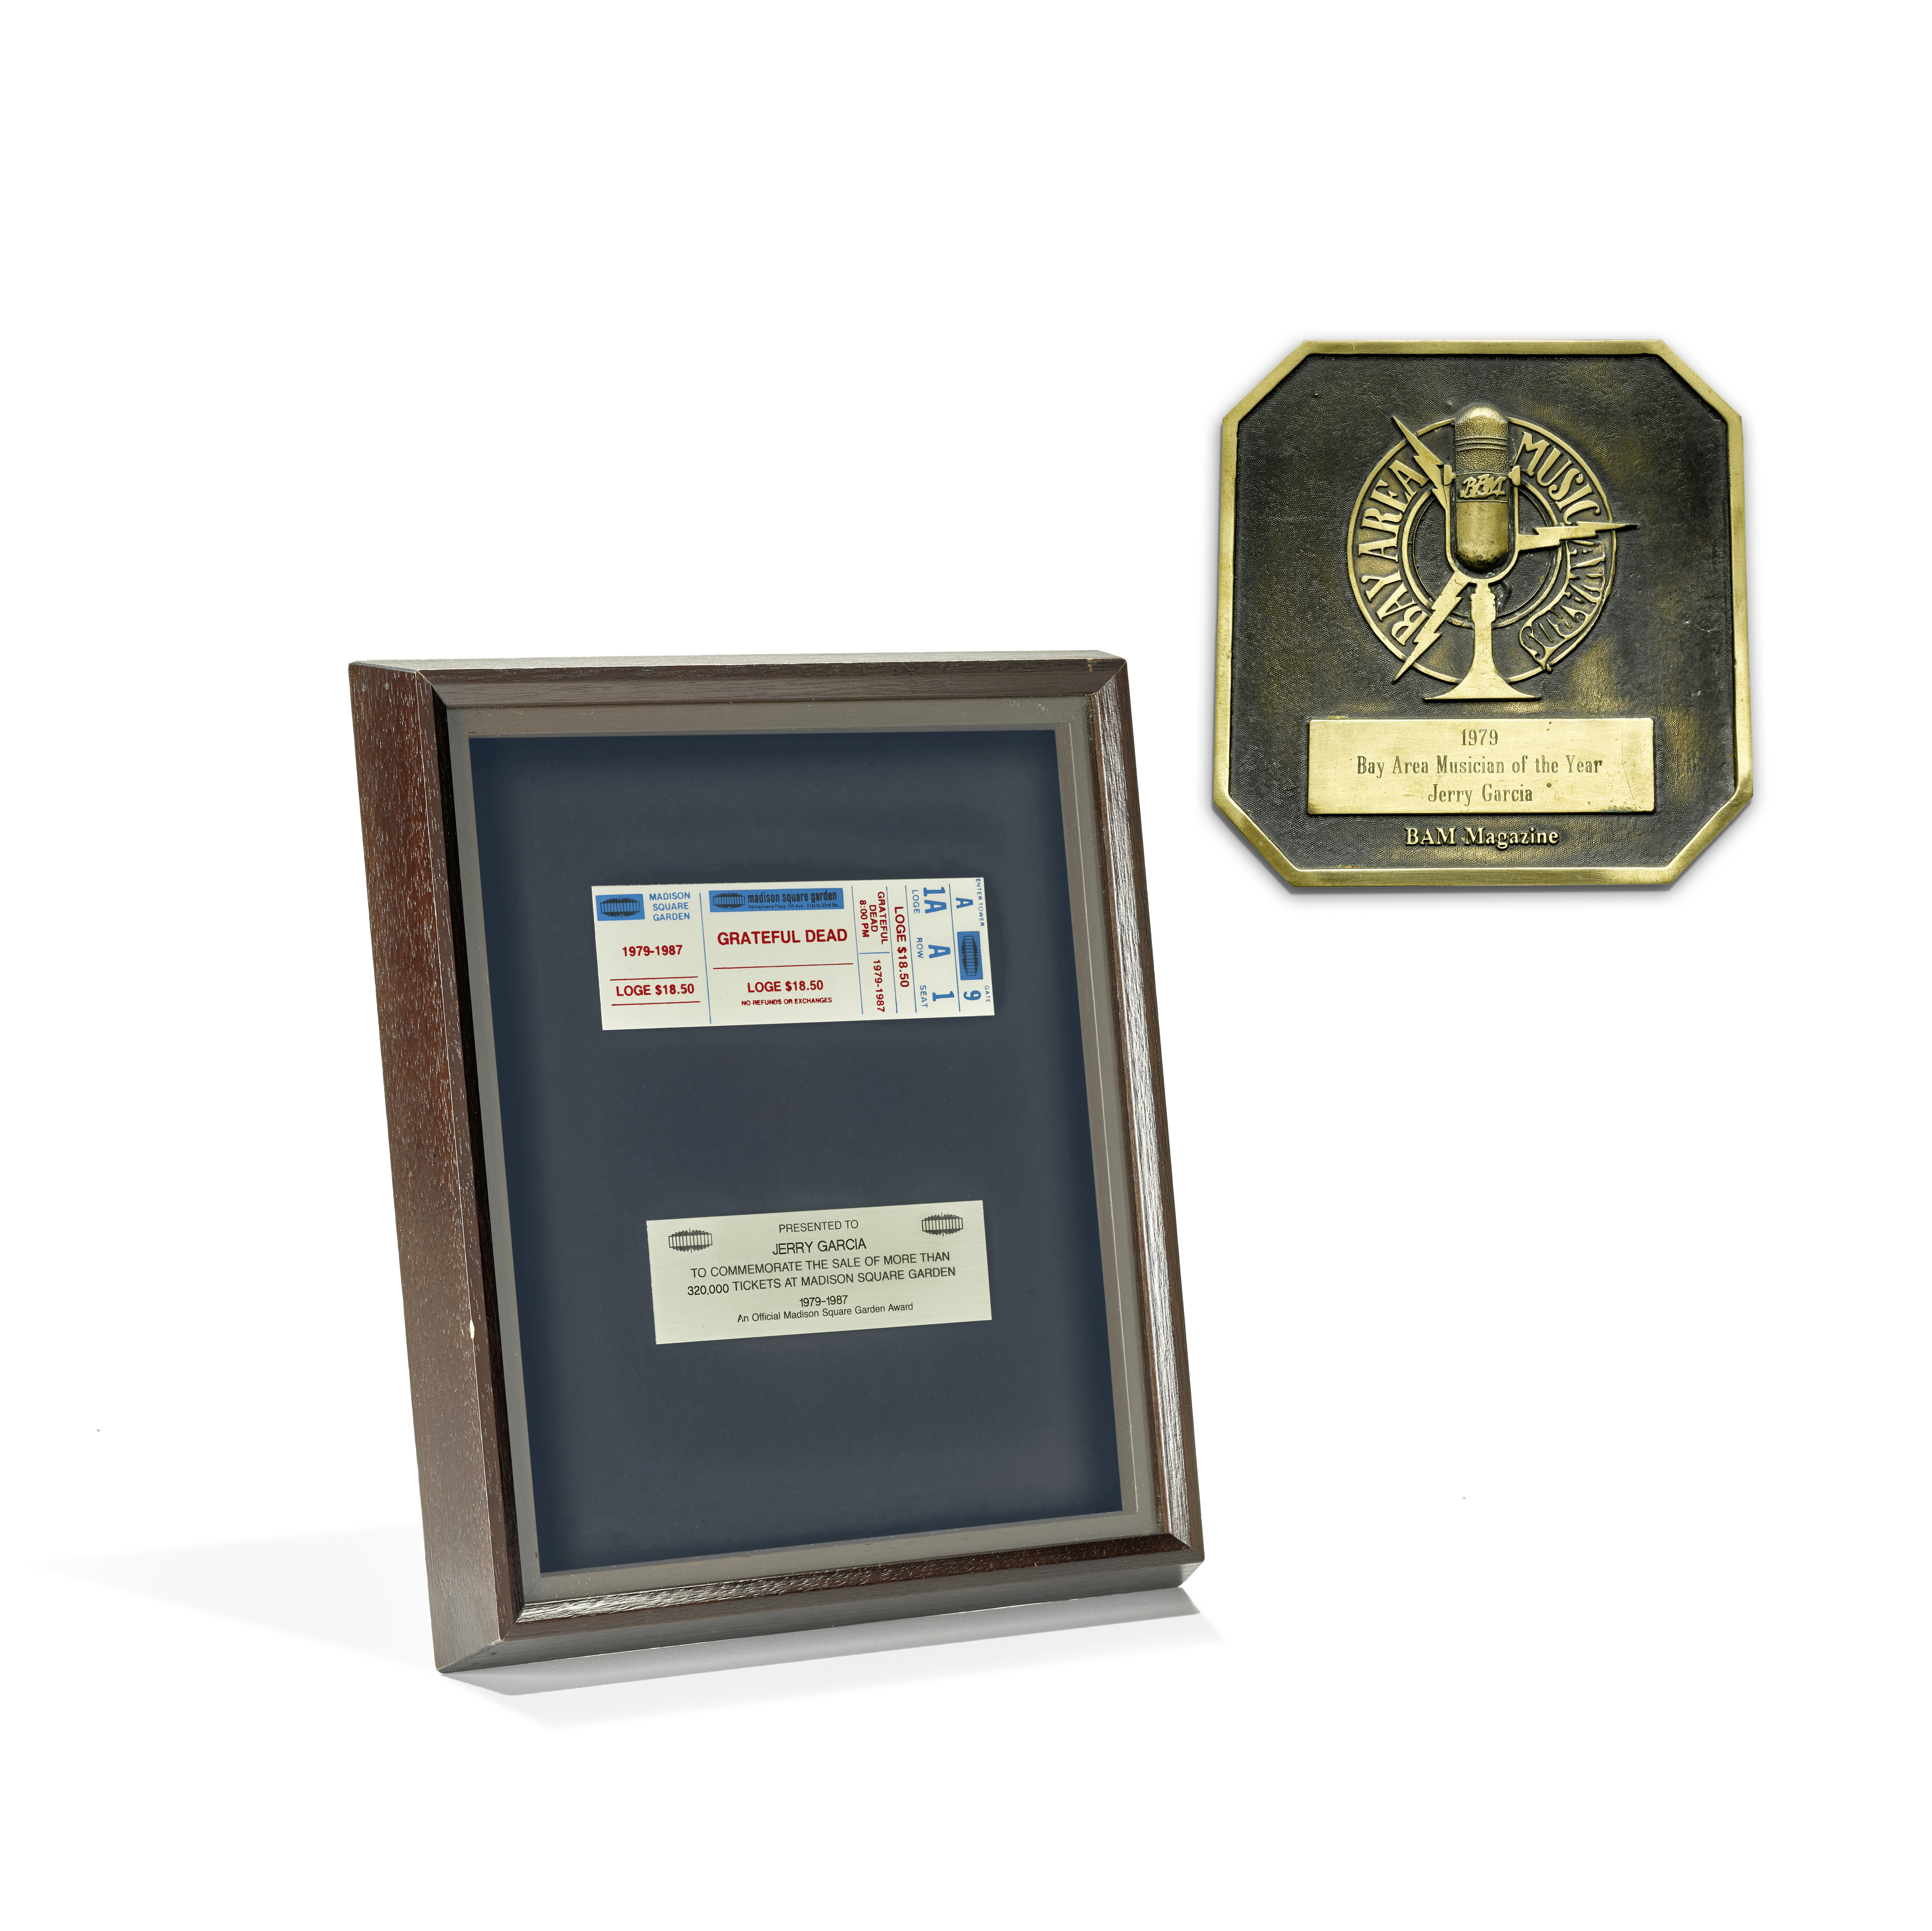 Lot 339 - A BAY AREA MUSIC AWARD FOR MUSICIAN OF THE YEAR PRESENTED TO JERRY GARCIA 1979